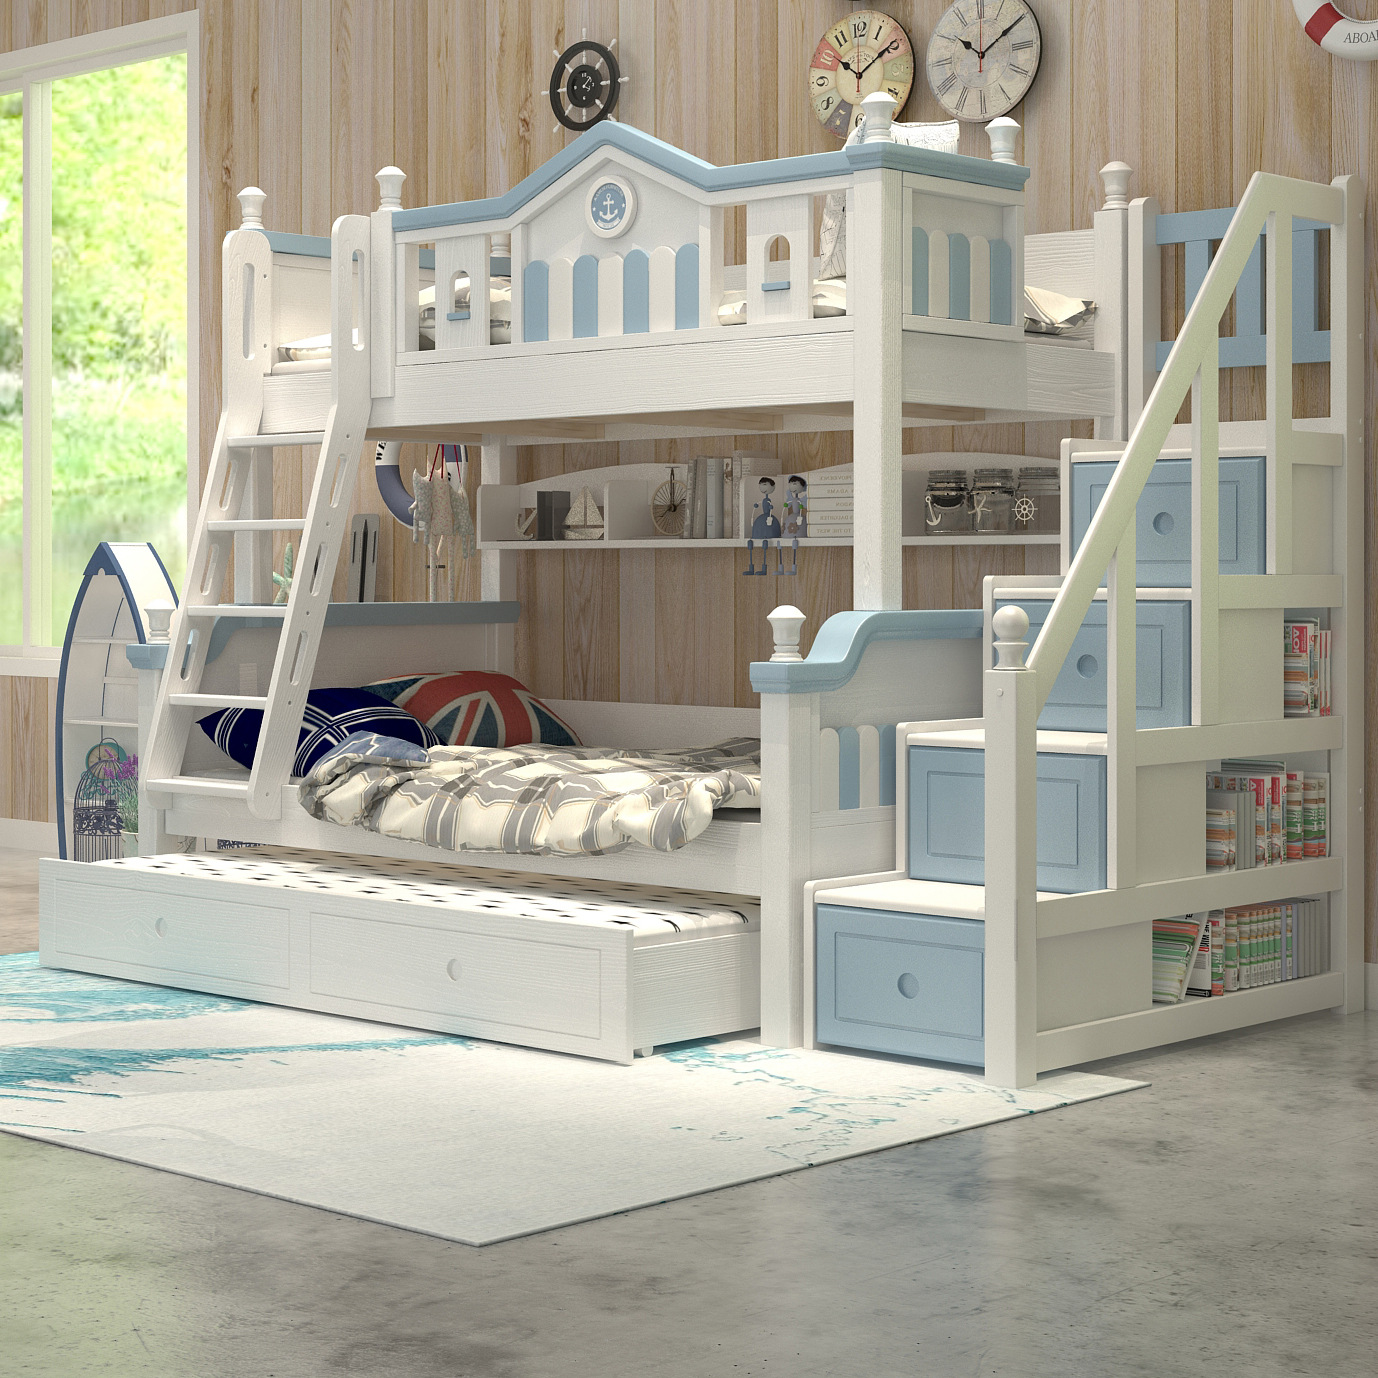 Solid Wood Children Bunk Bed Height-adjustable Bed Multi-functional Combination Double Layer Bunk Bed Boys And Girls Bed Blue Be